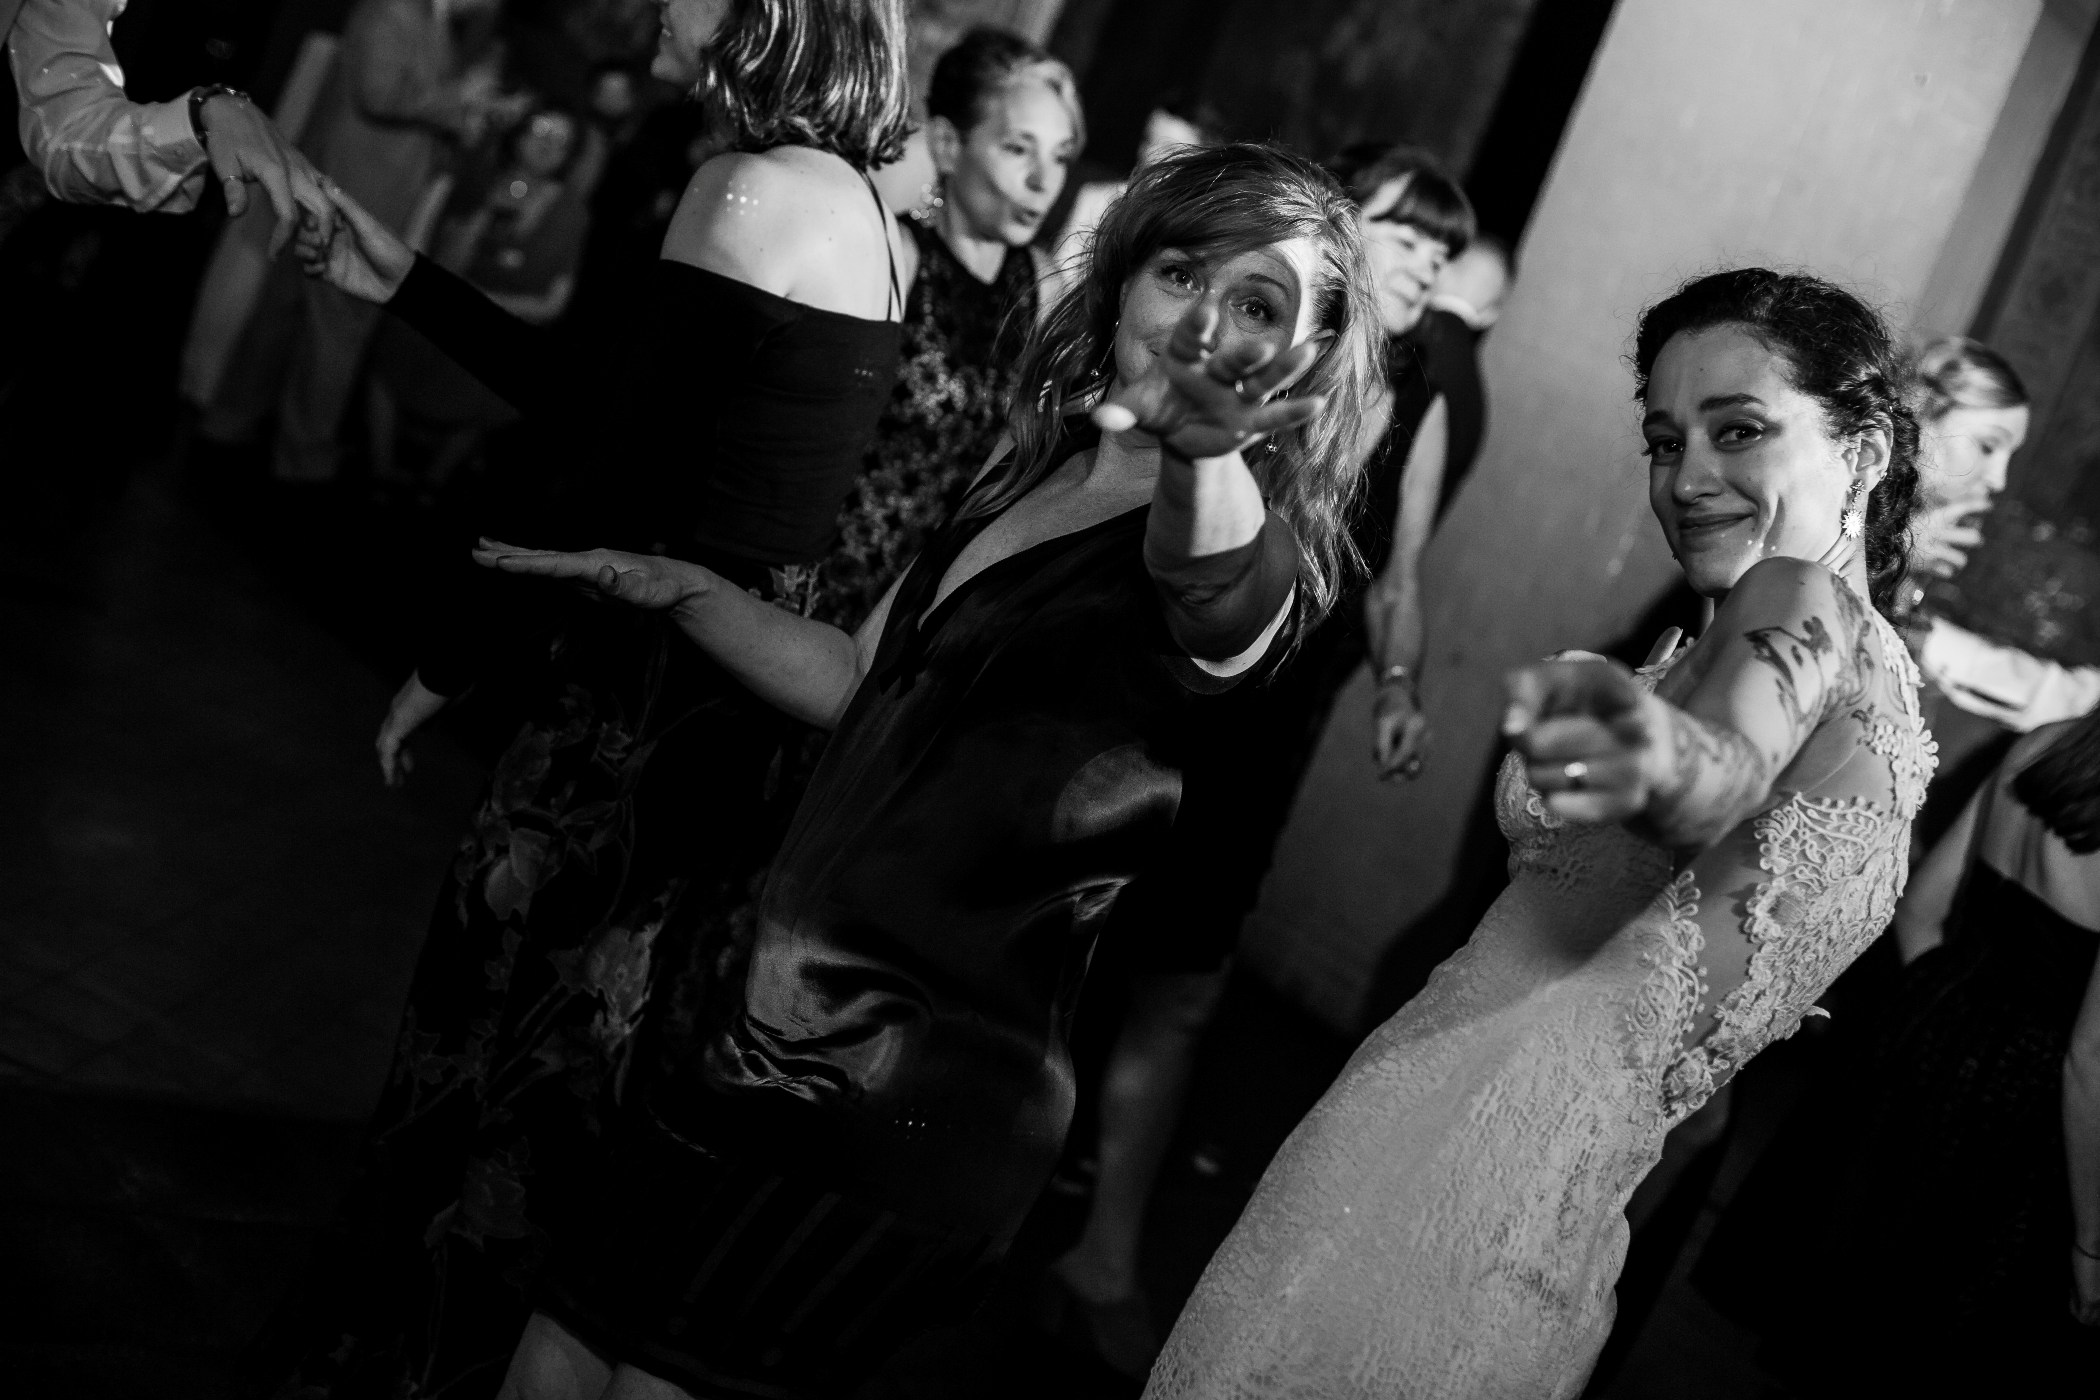 fleisher art memorial wedding (70 of 70)070.jpg